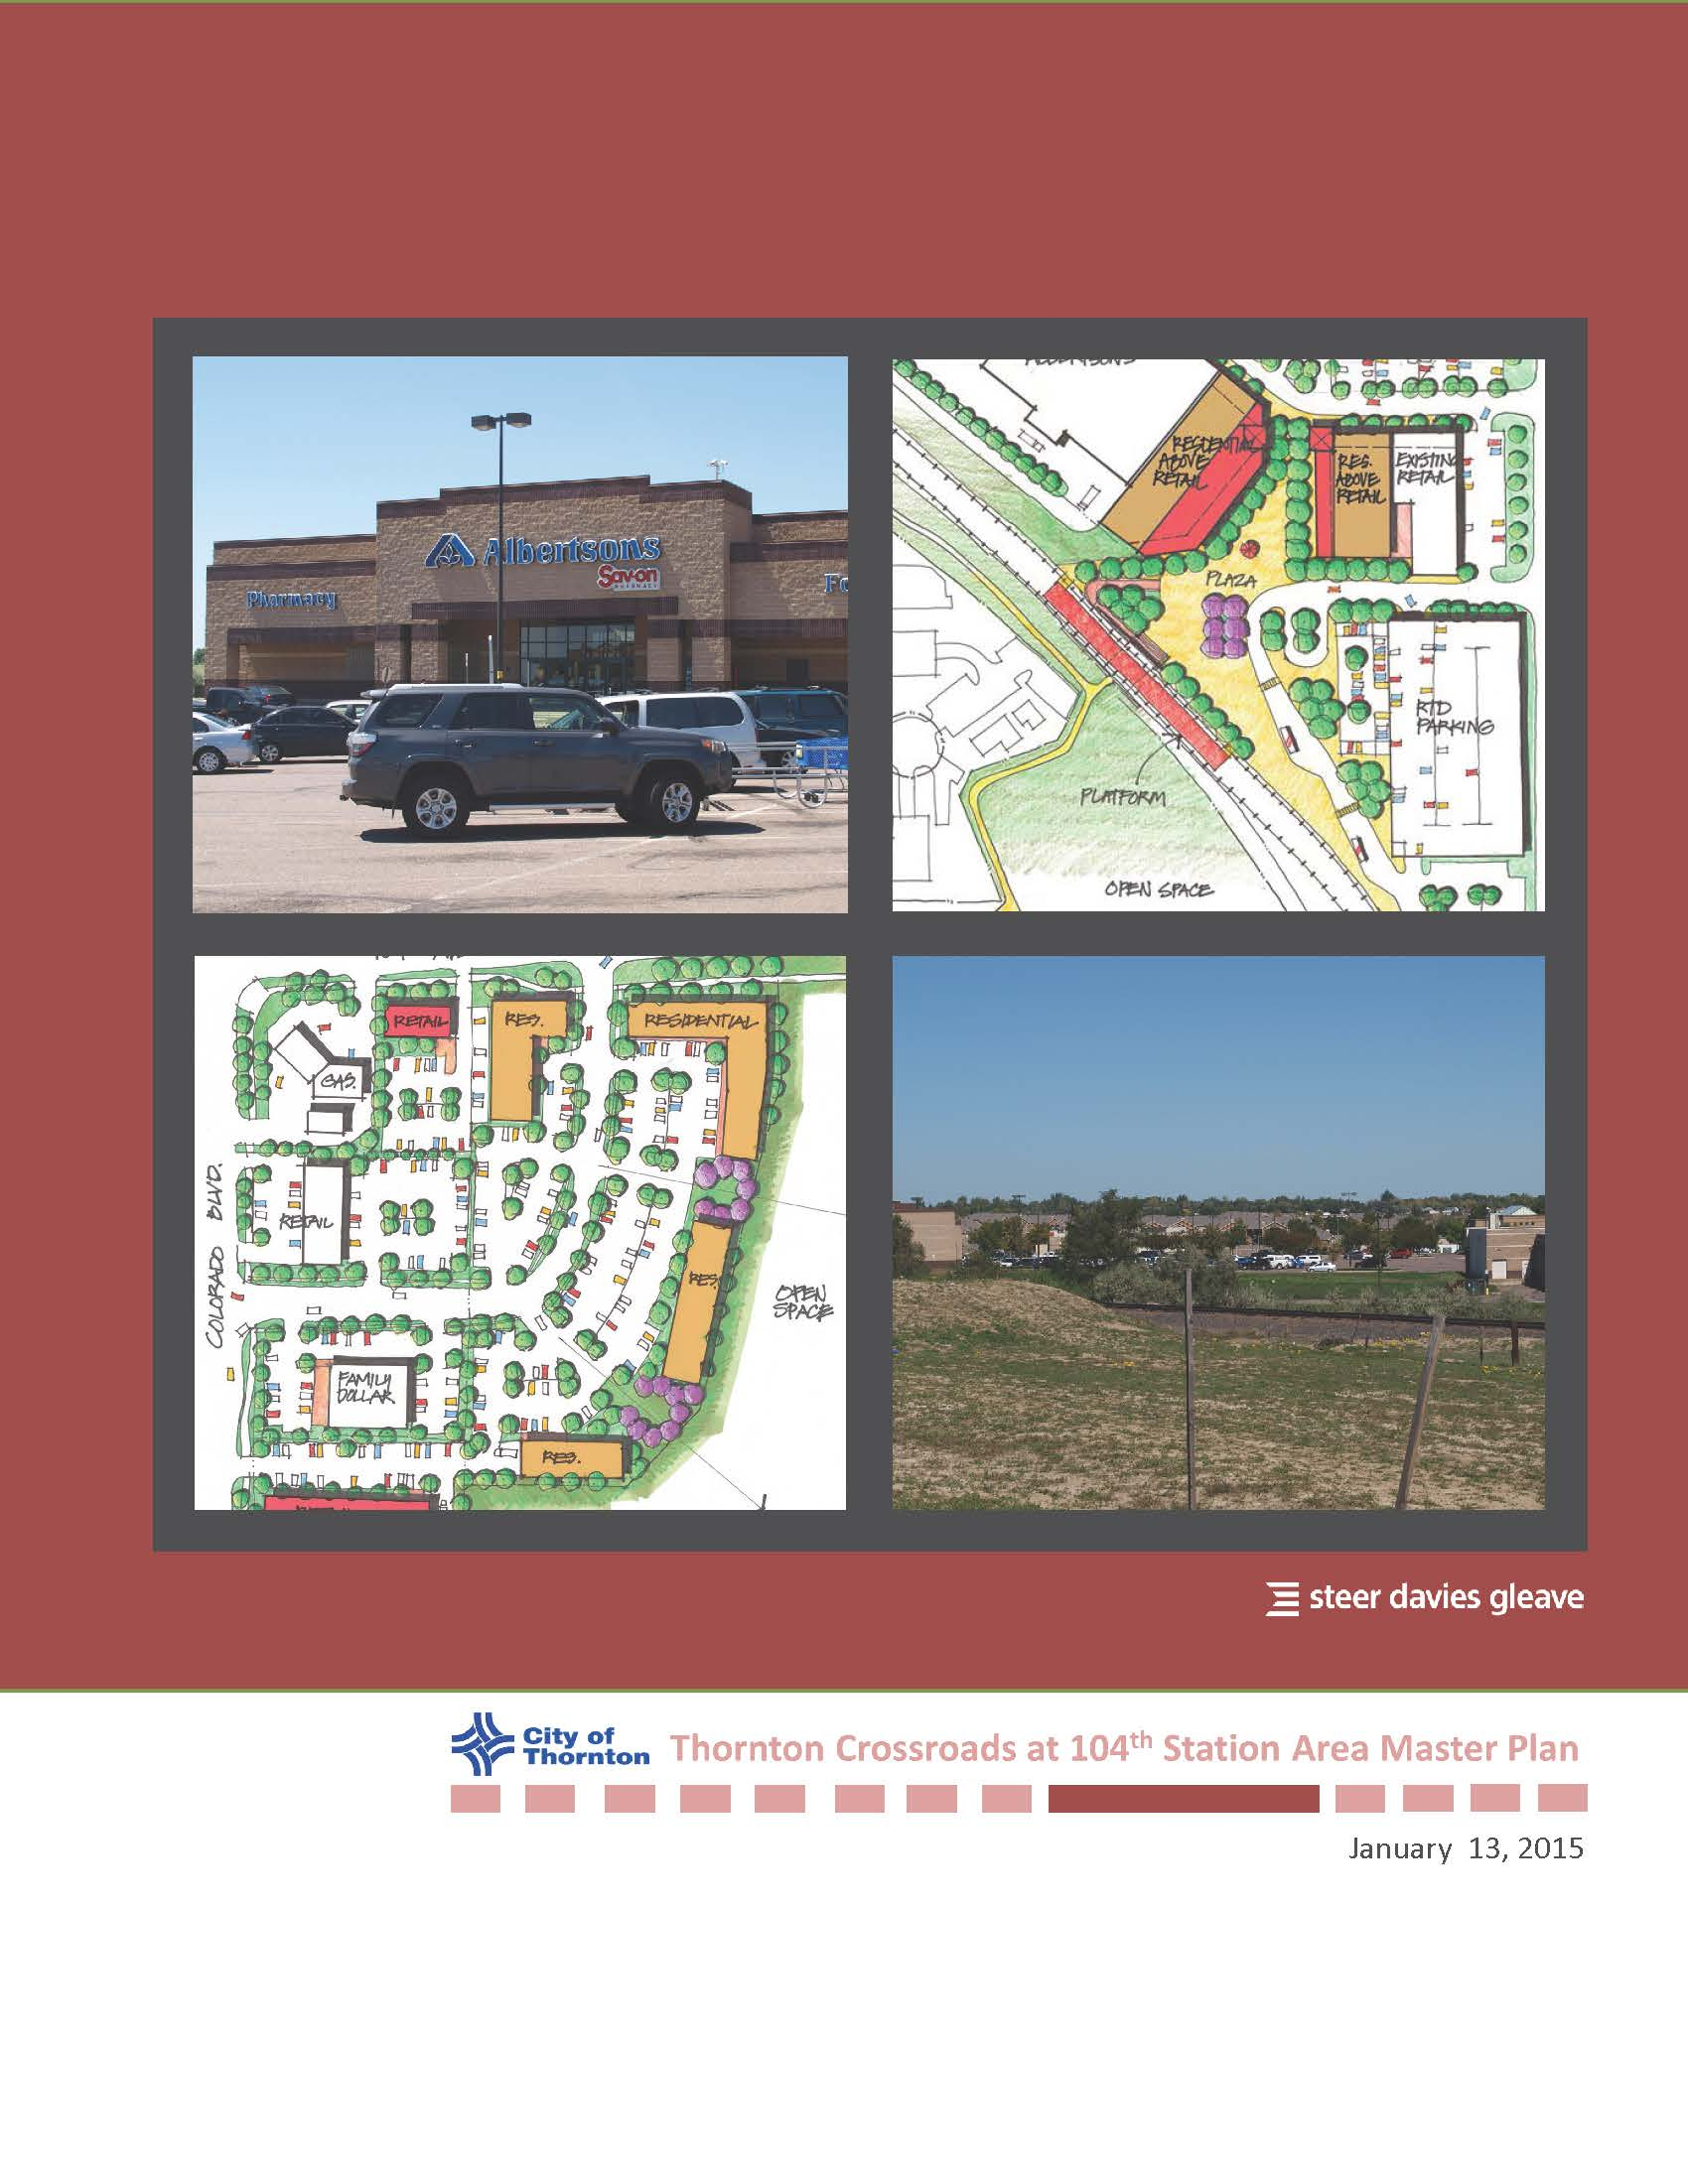 Thornton Crossroads at 104th Station Area Master Plan Cover